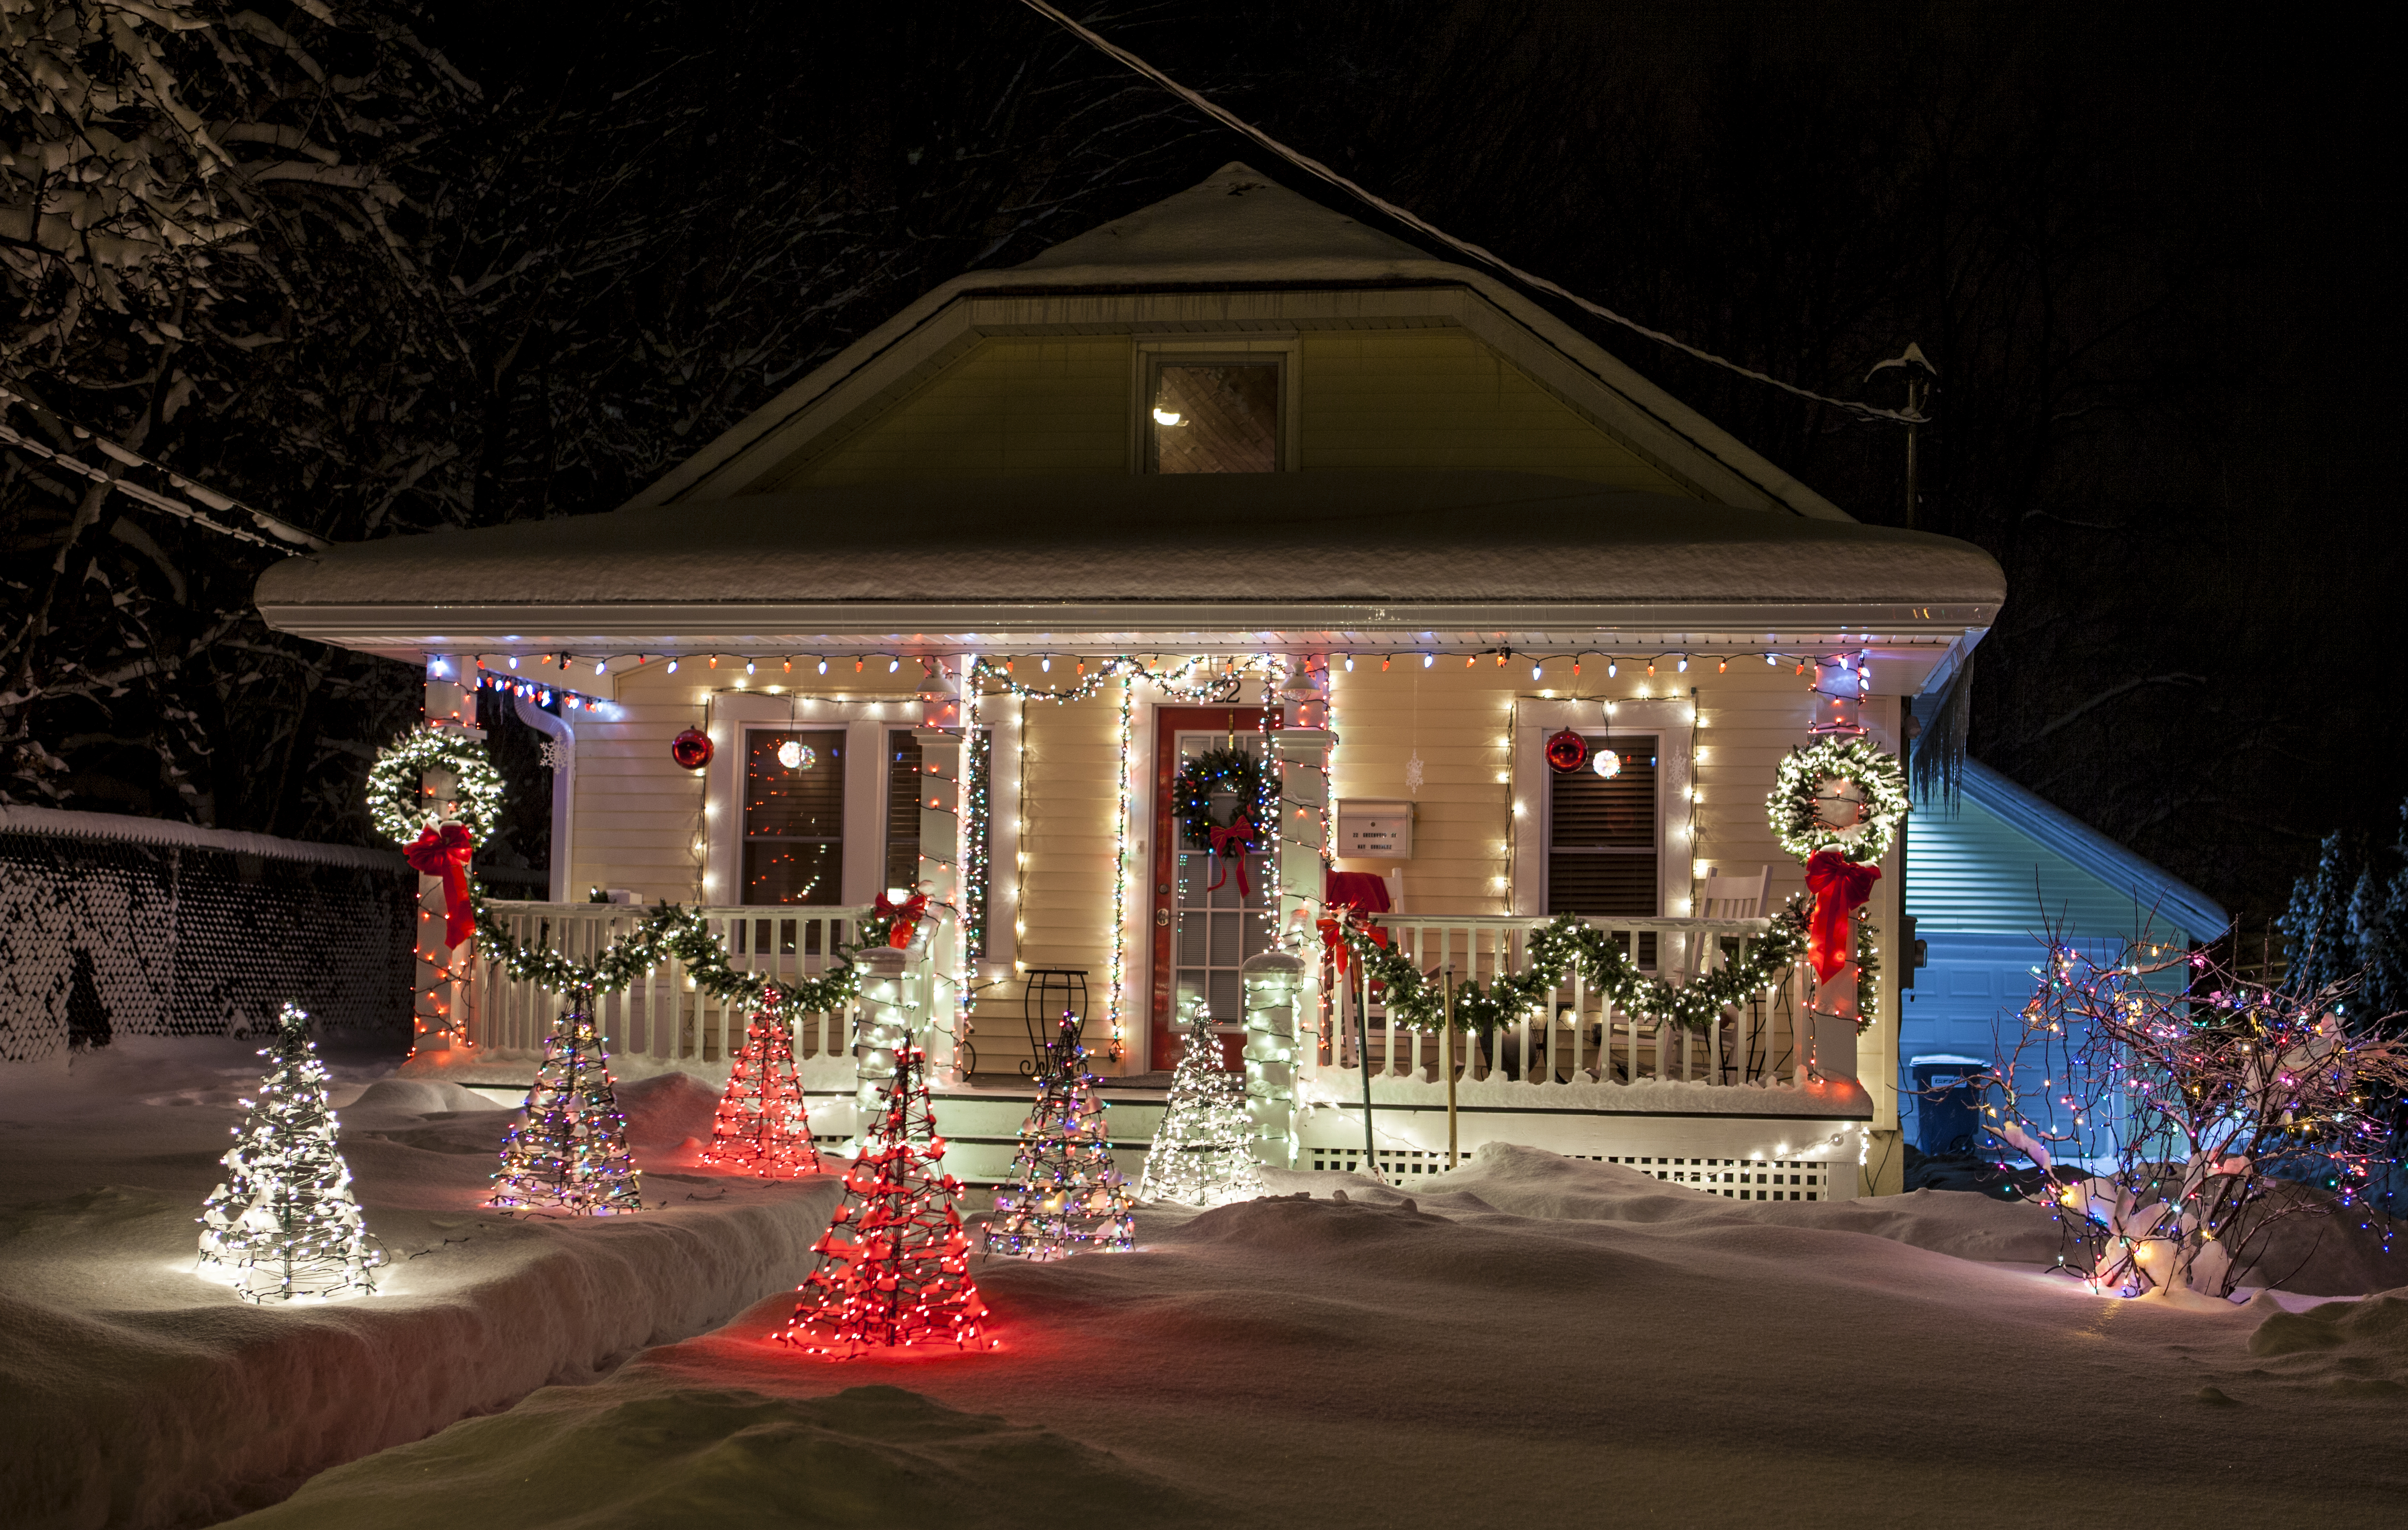 lake placid ny the lake placid village holiday decorating contest committee is alerting all decorators that this year the annual contest will coincide